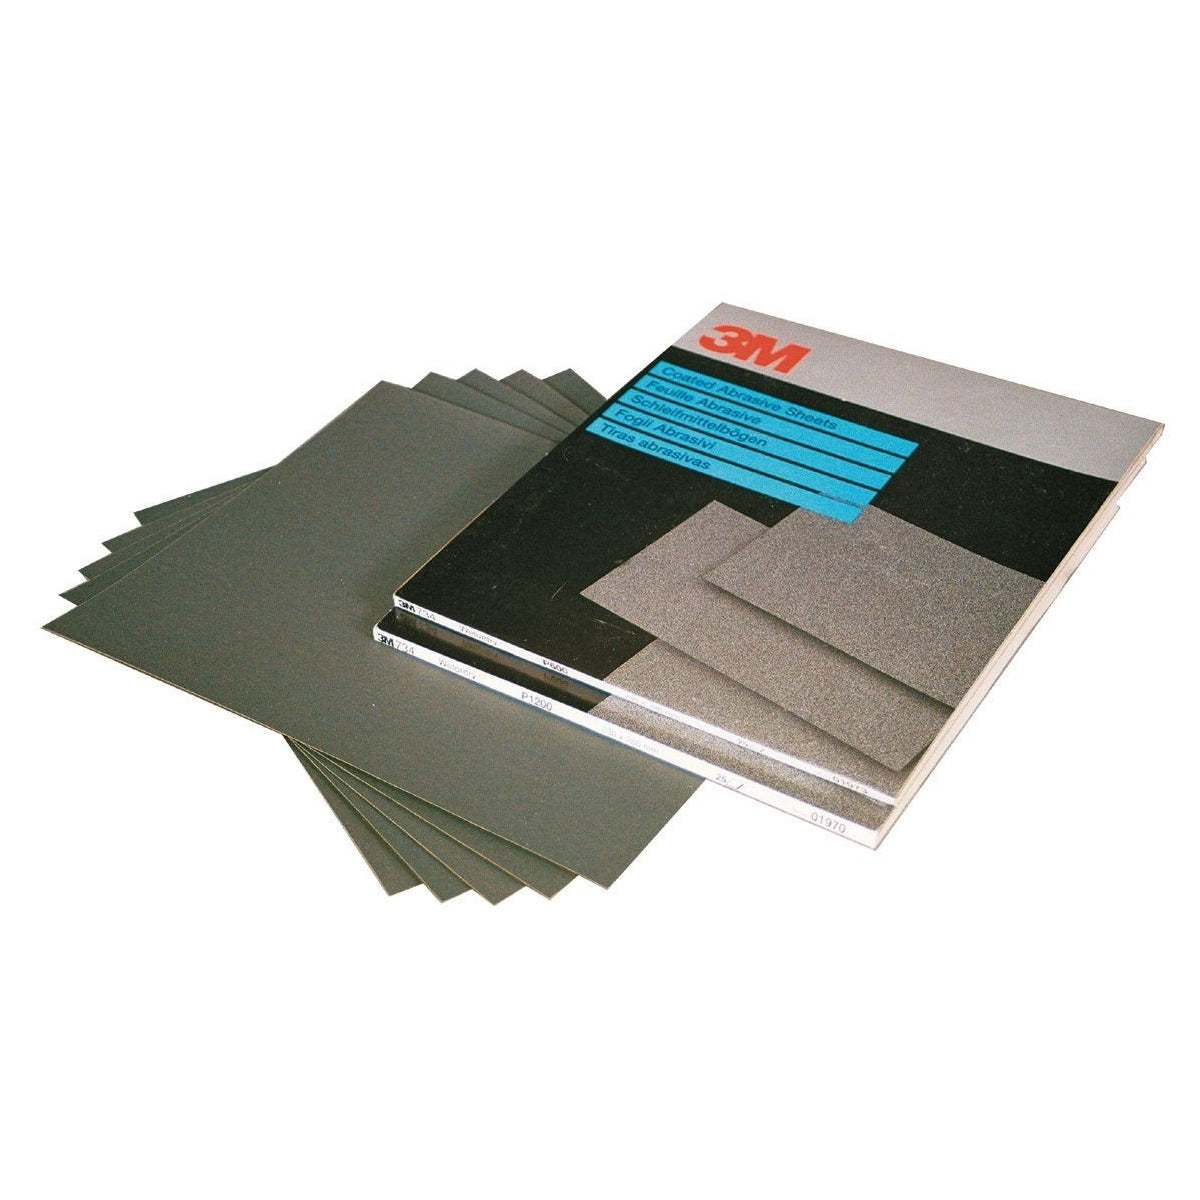 3M Wet and Dry Sandpaper 1200 Grit